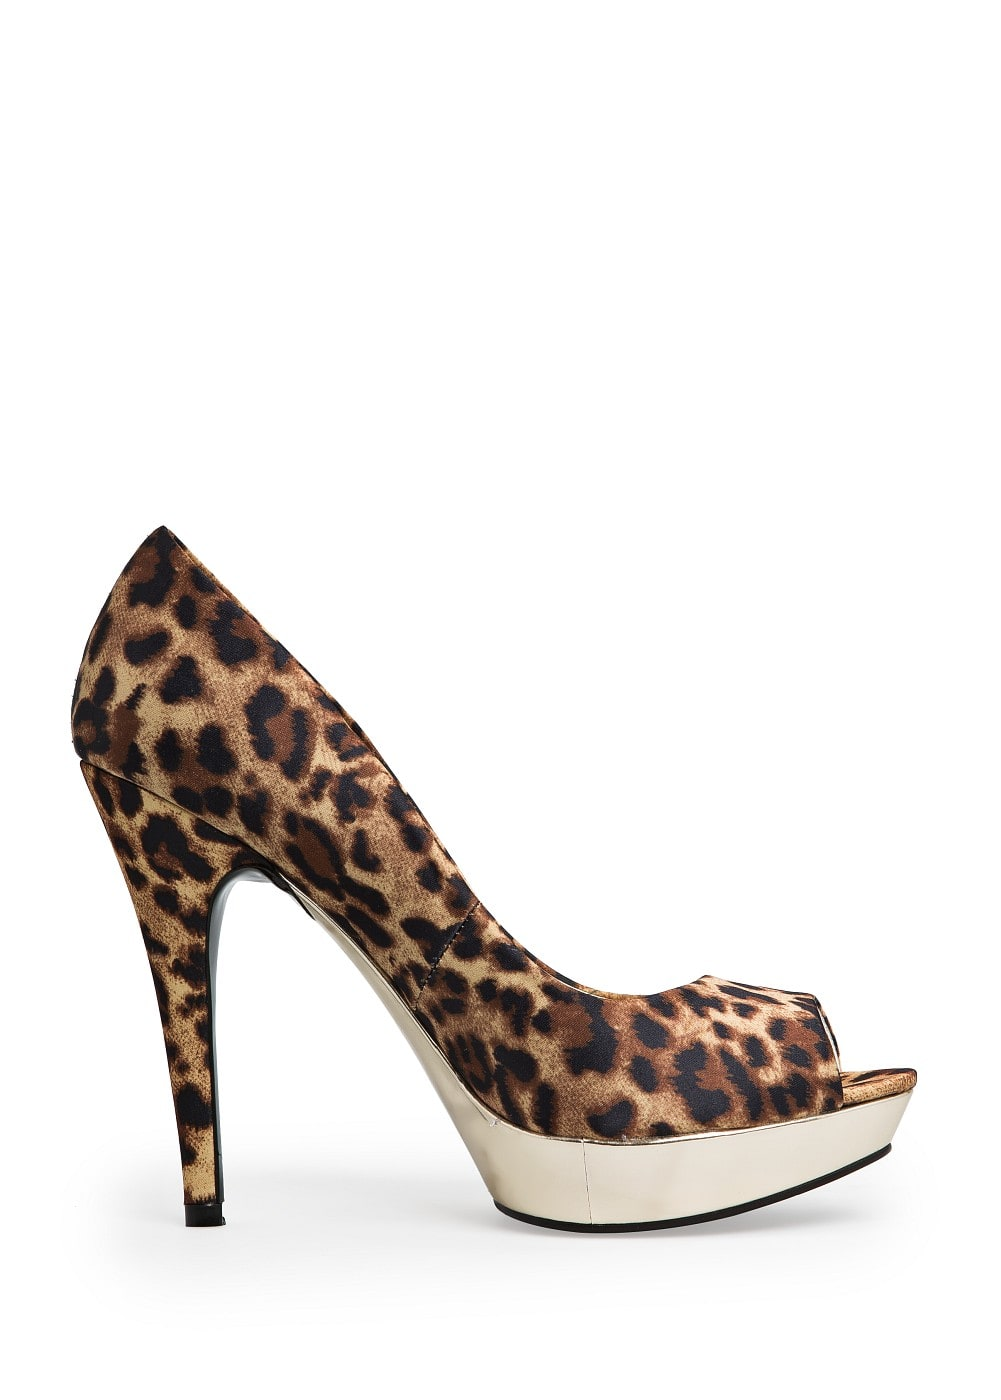 Zapatos peep-toe estampado leopardo